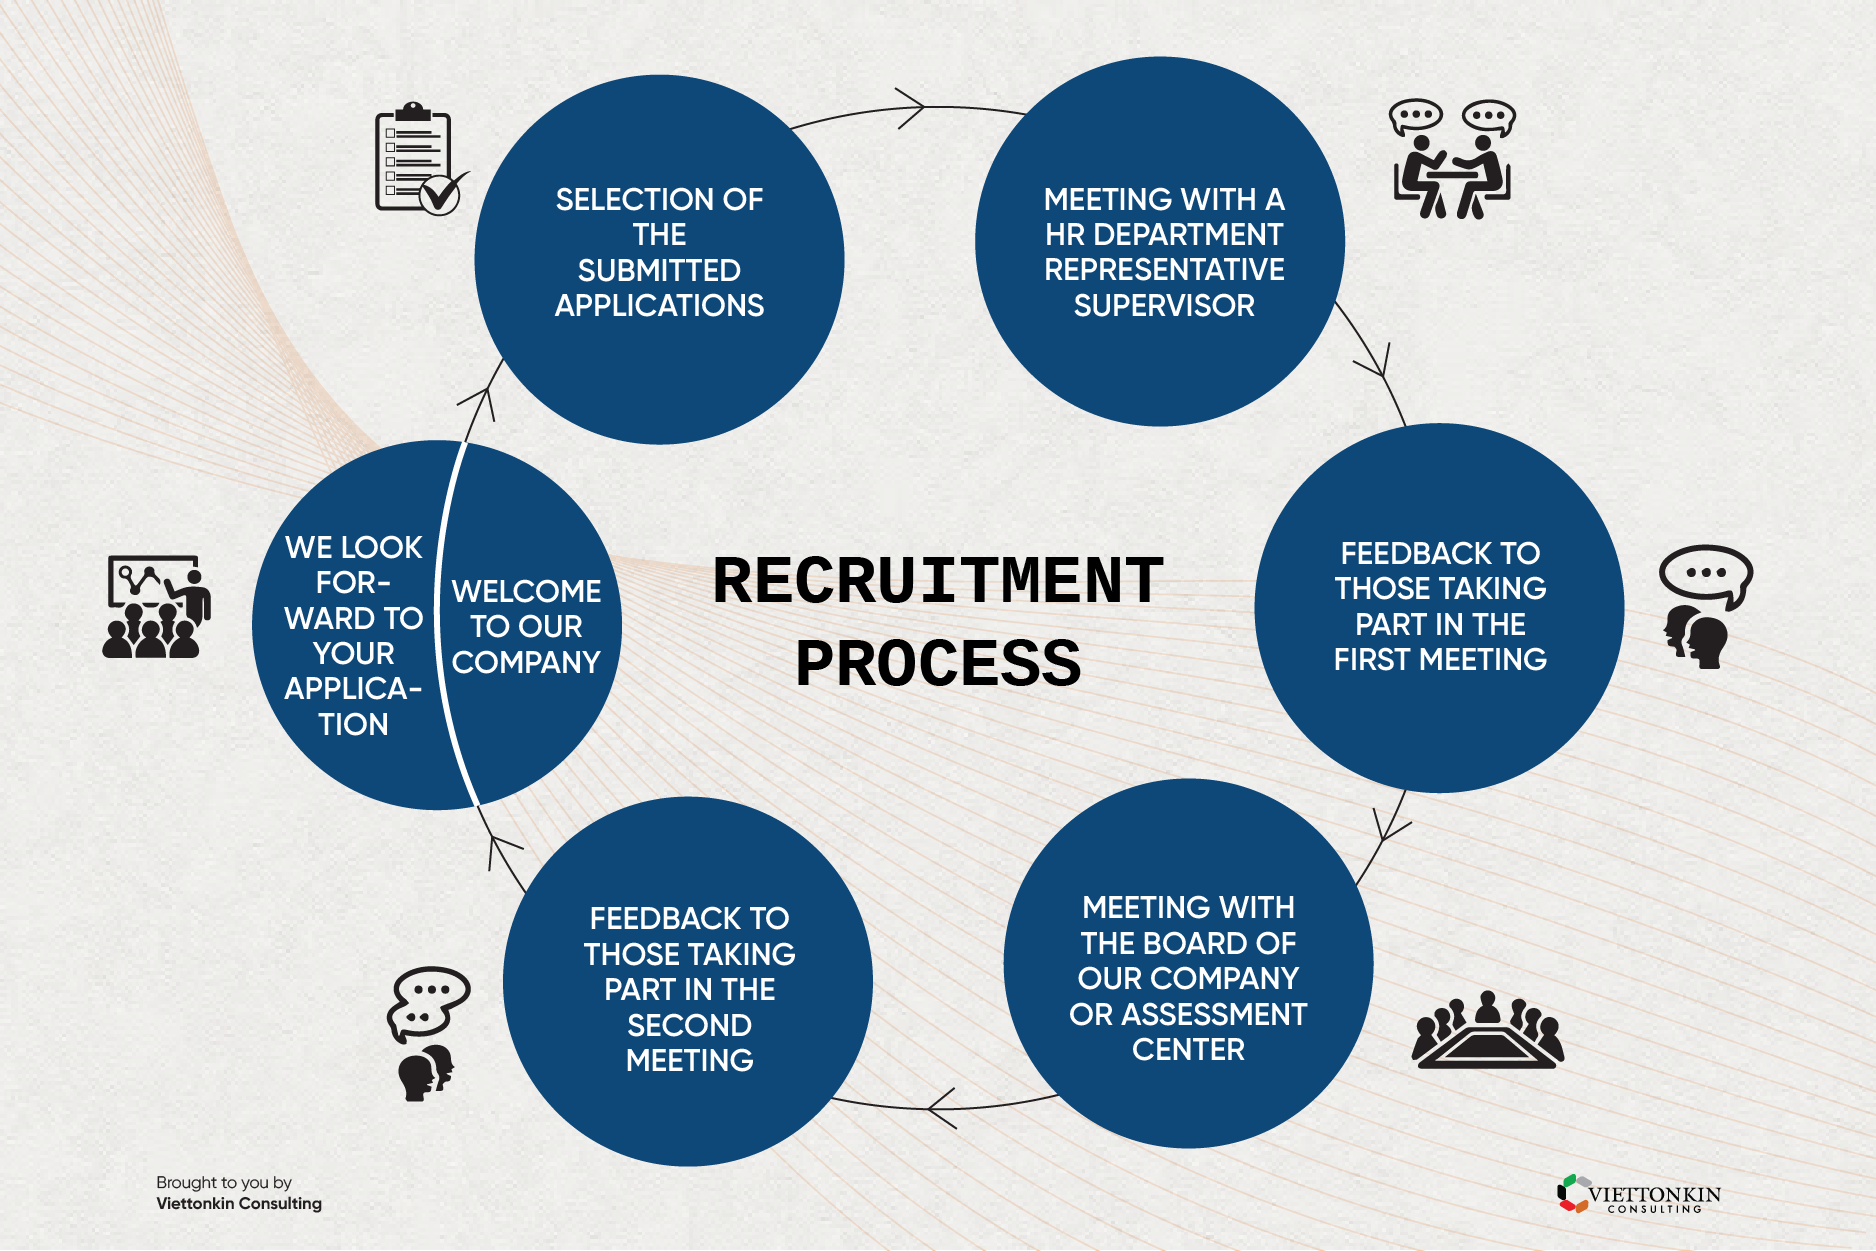 Recruitment process in hospitality industry